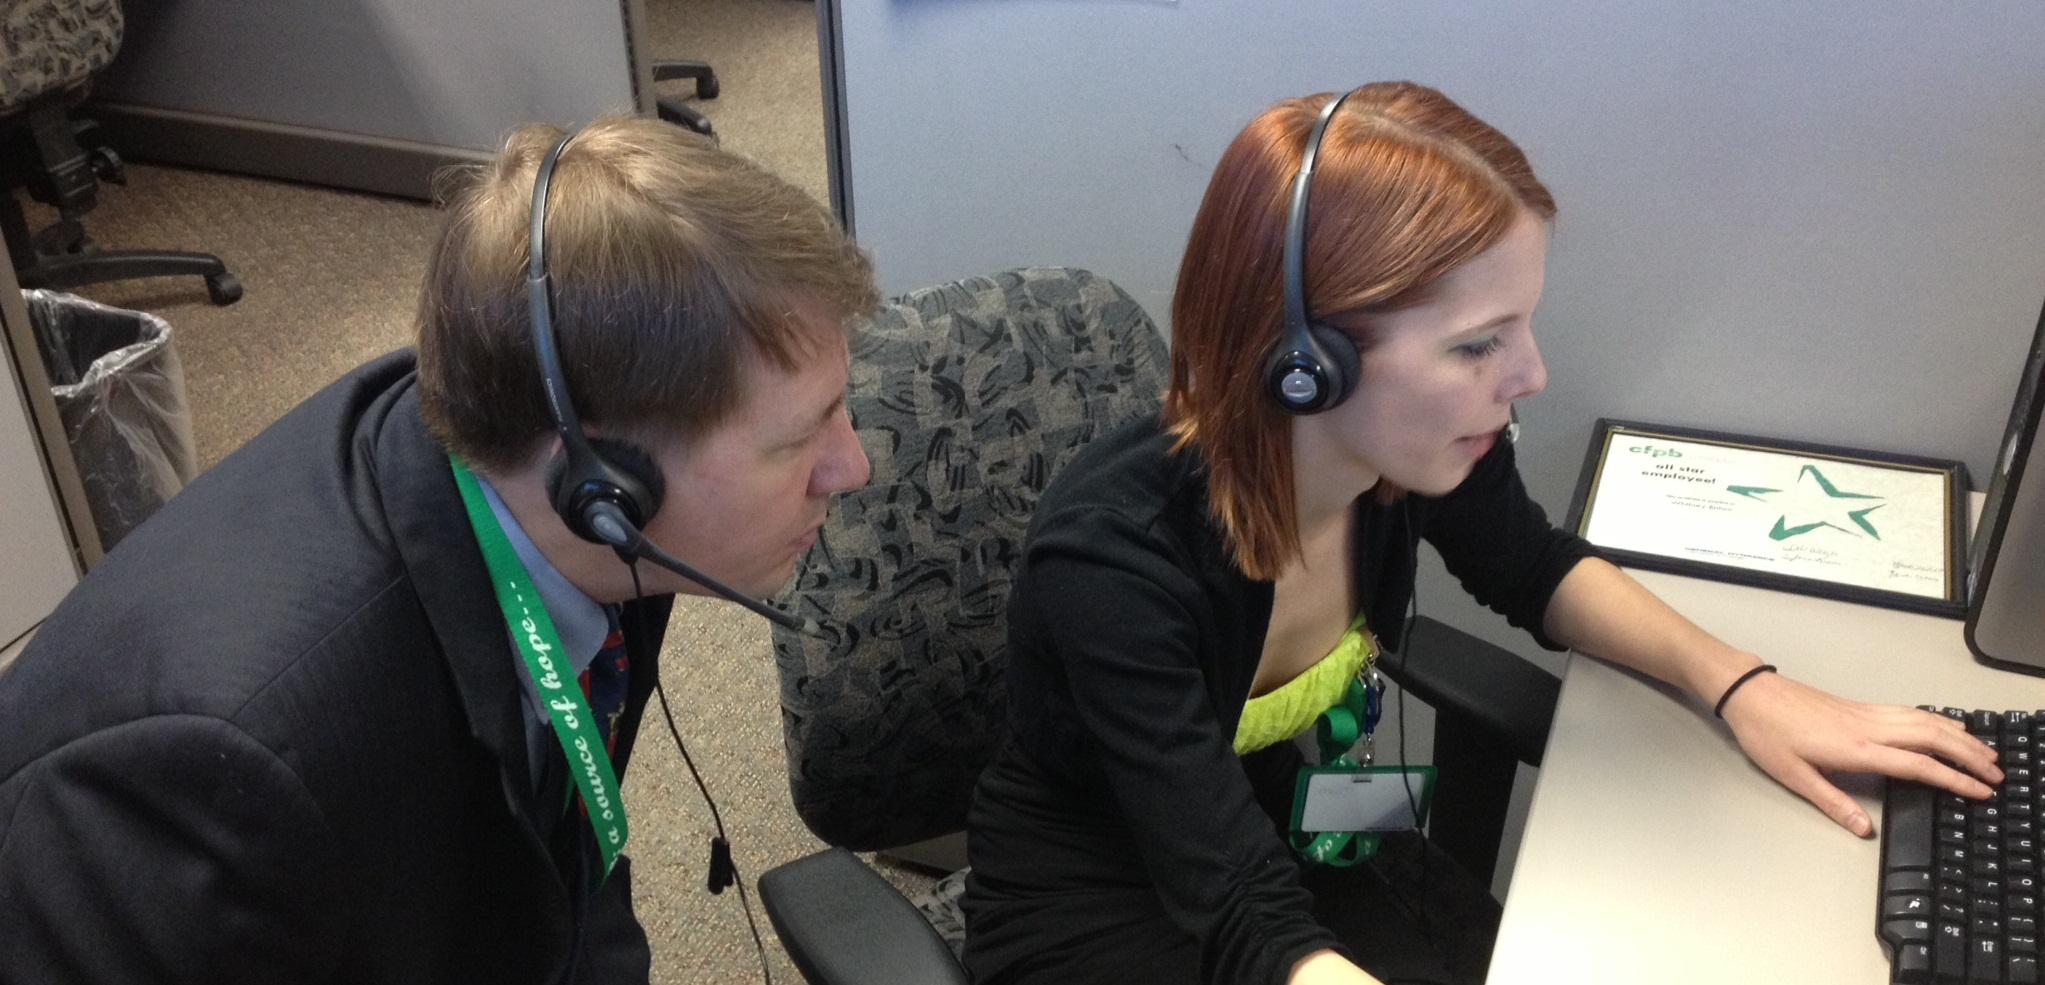 CFPB director at a call center